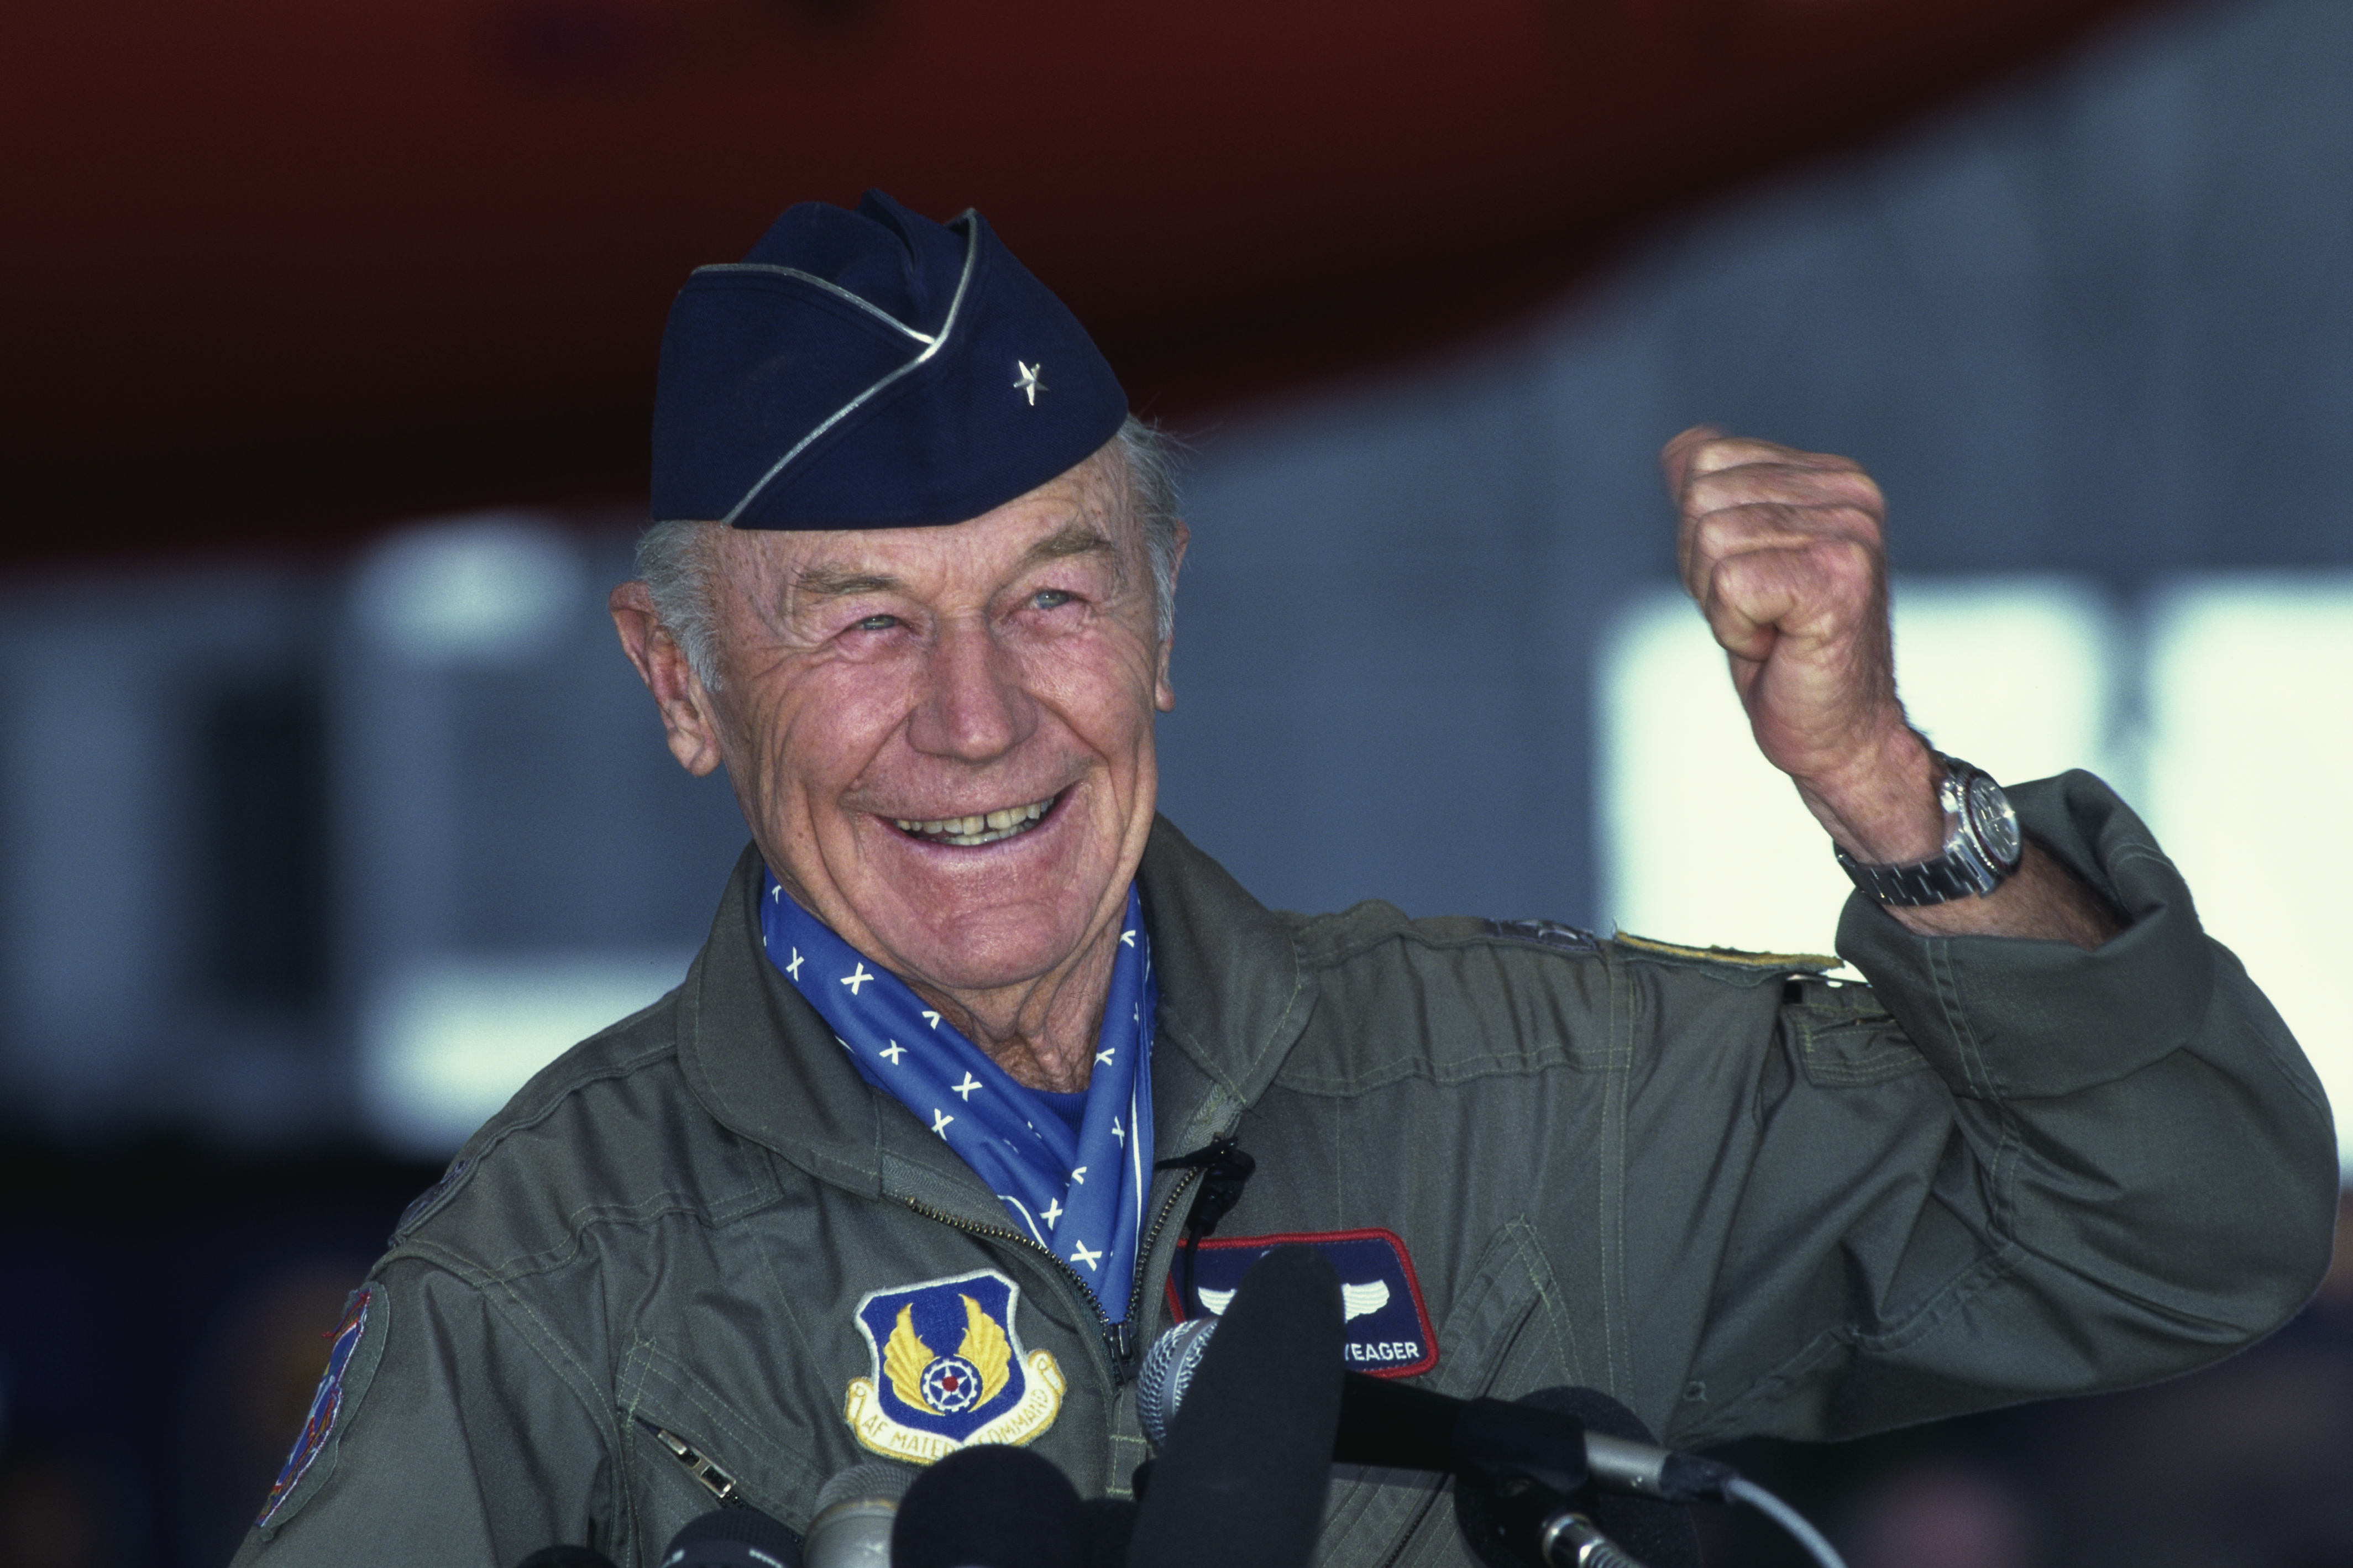 Chuck Yeager during a 1997 press conference at Edwards Air Force Base during the 50th anniversary celebration of his October 14, 1947 Bell X-1 flight, in which he became the first man to break the sound barrier.